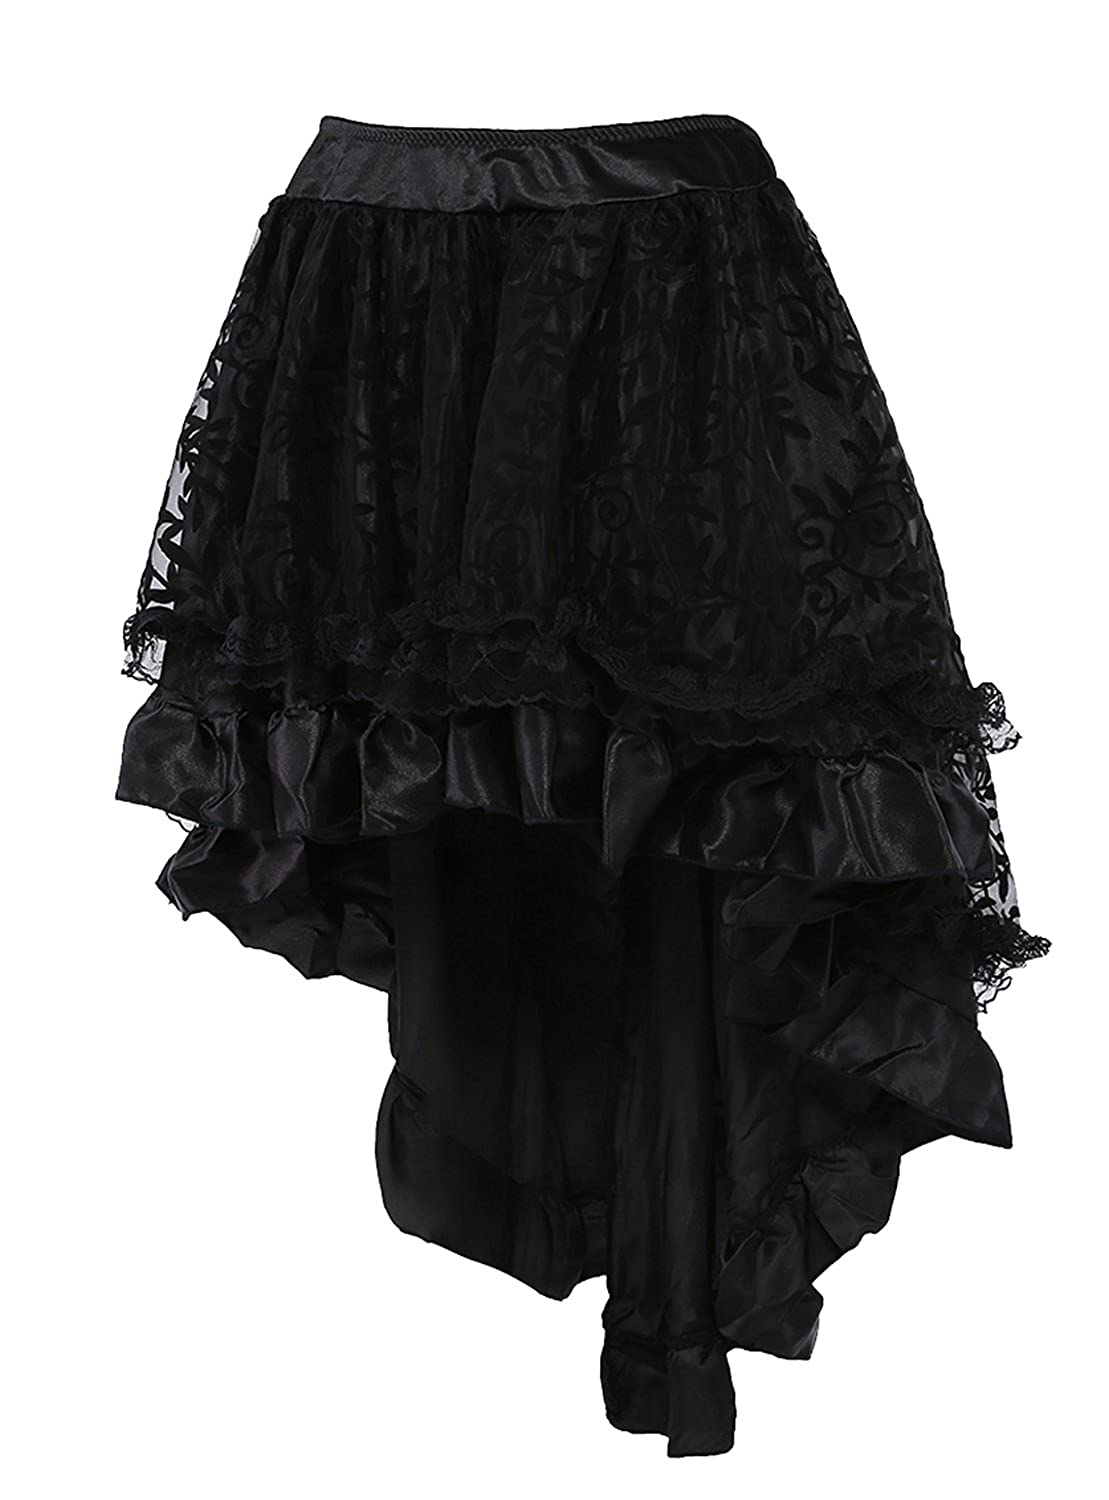 Steampunk Skirts | Bustle Skirts, Lace Skirts, Ruffle Skirts  Lace Asymmetrical High Low Corset Skirt $19.99 AT vintagedancer.com